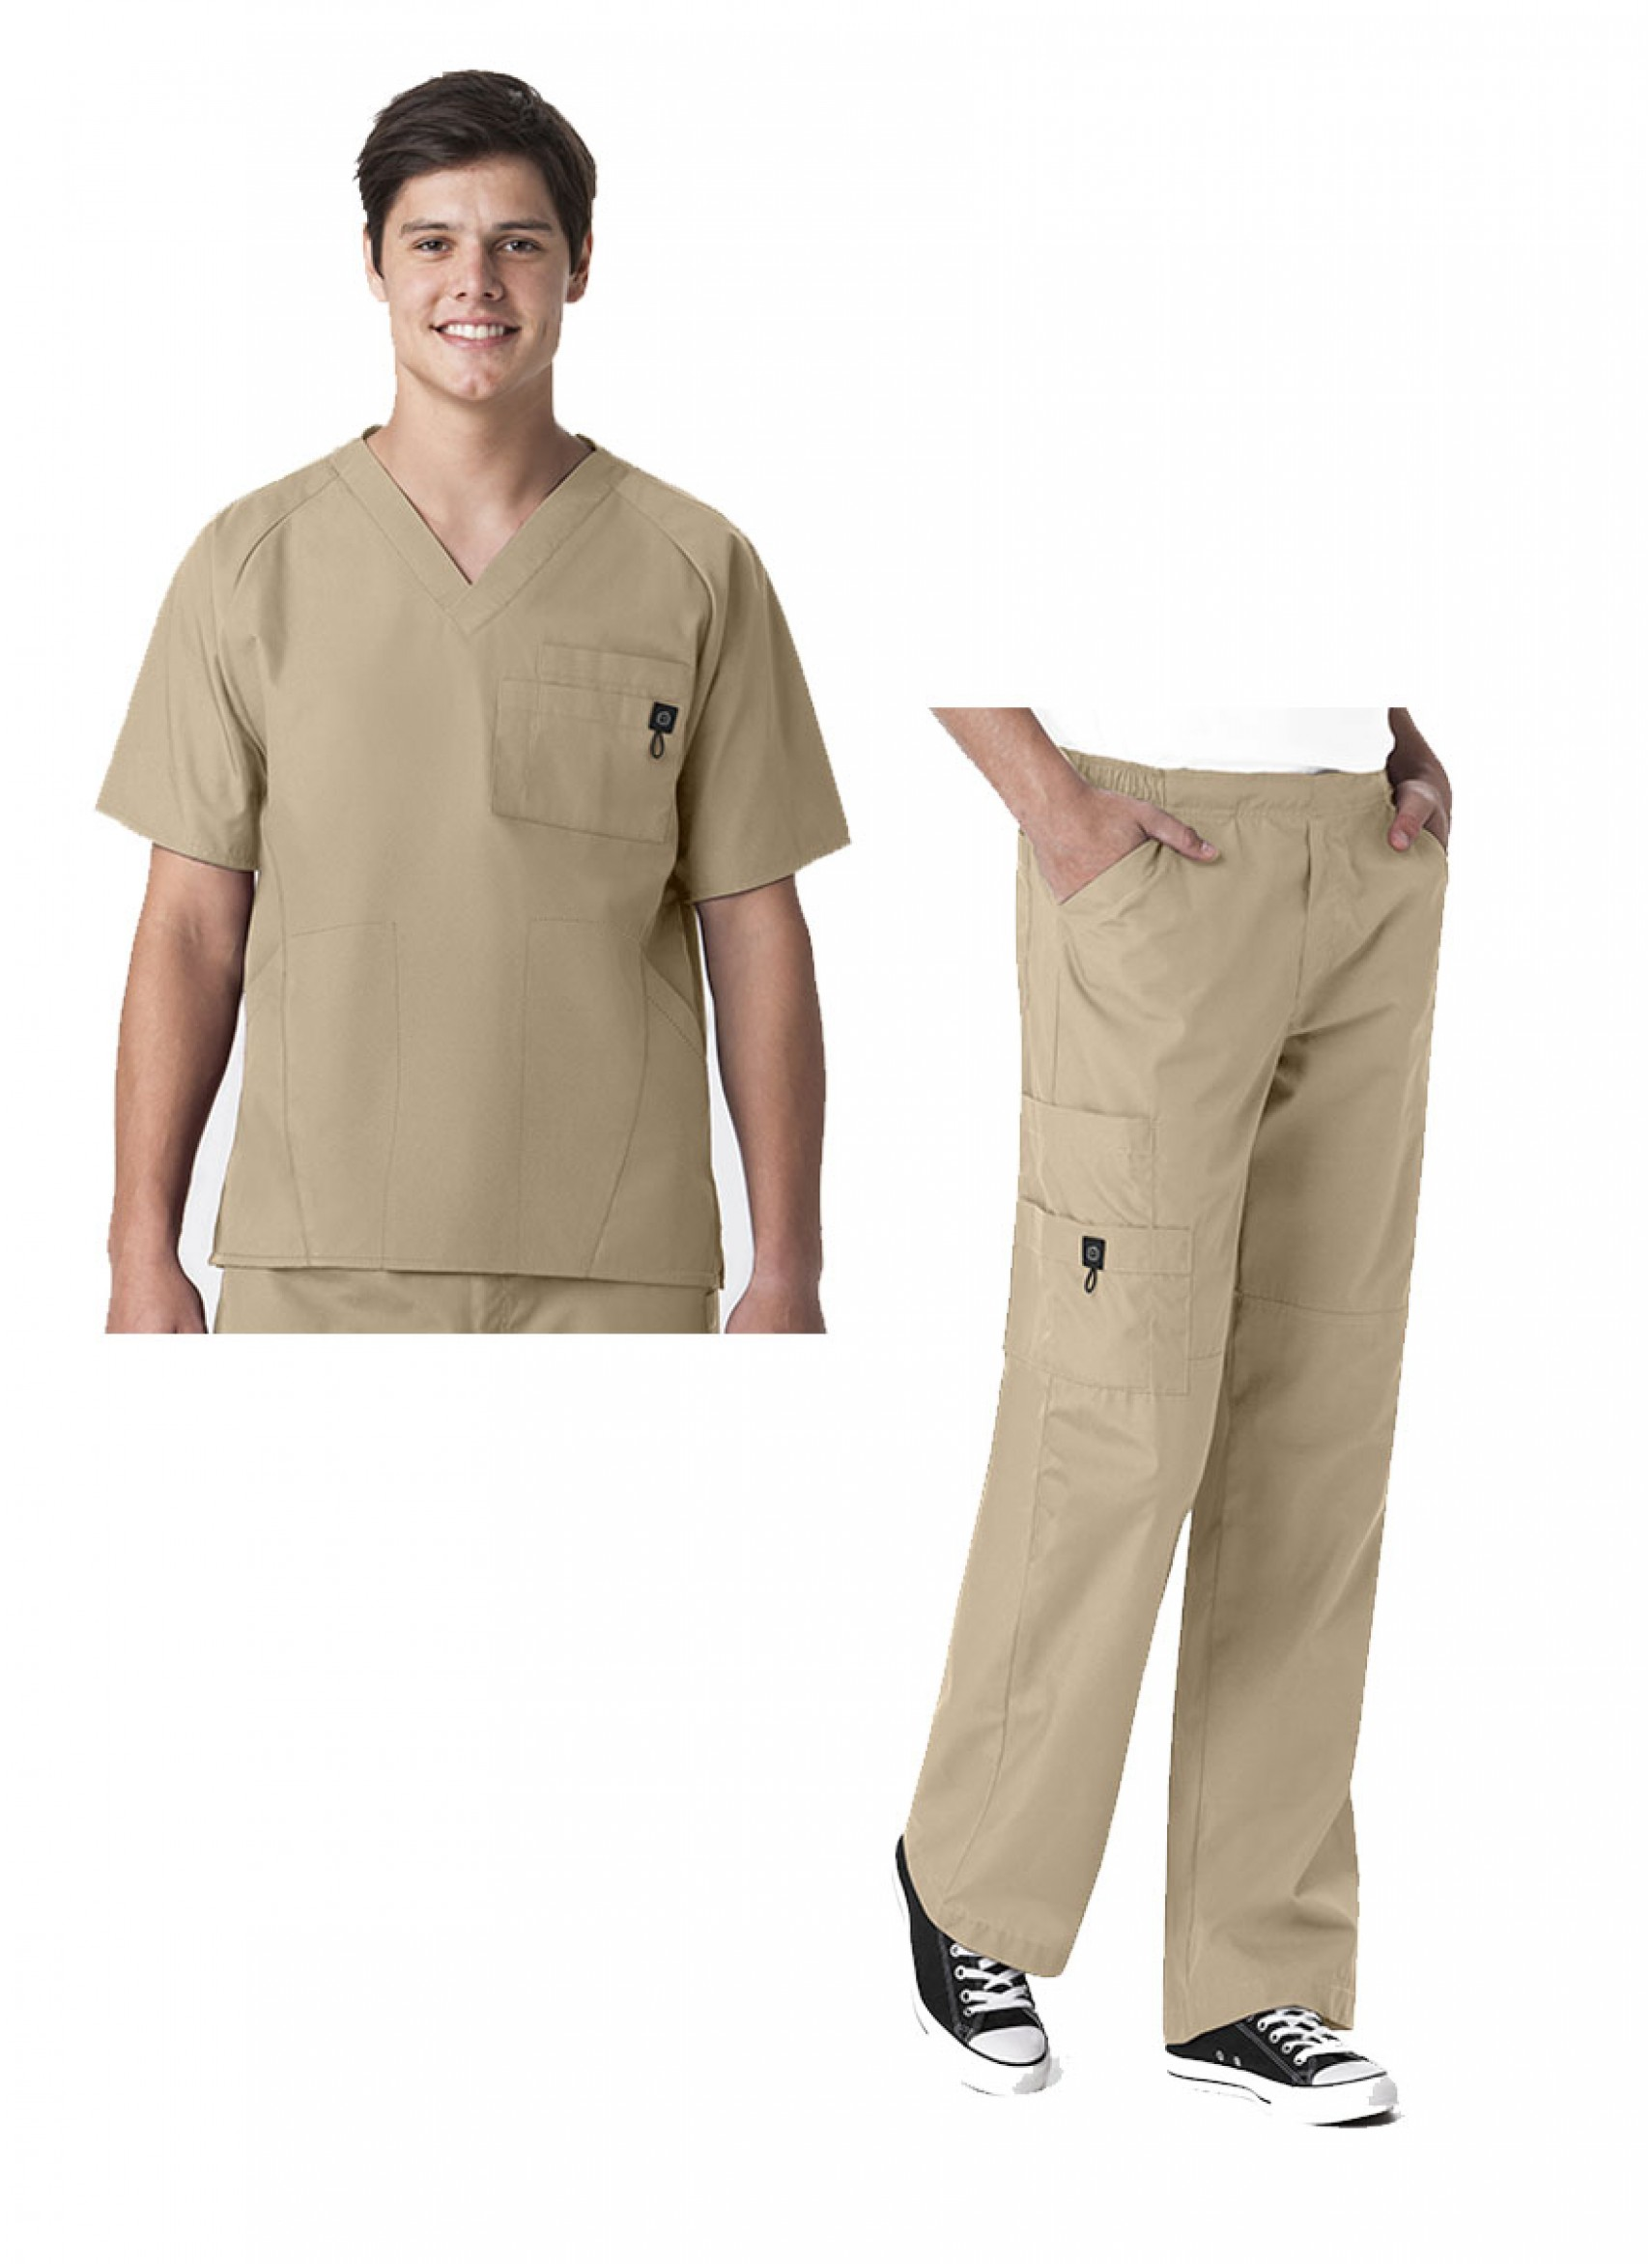 86c48ec3227 20% off all Dickies Scrubs! Use code DICKIES20 at checkout! Wonder Wink  Men's Scrub Set ...